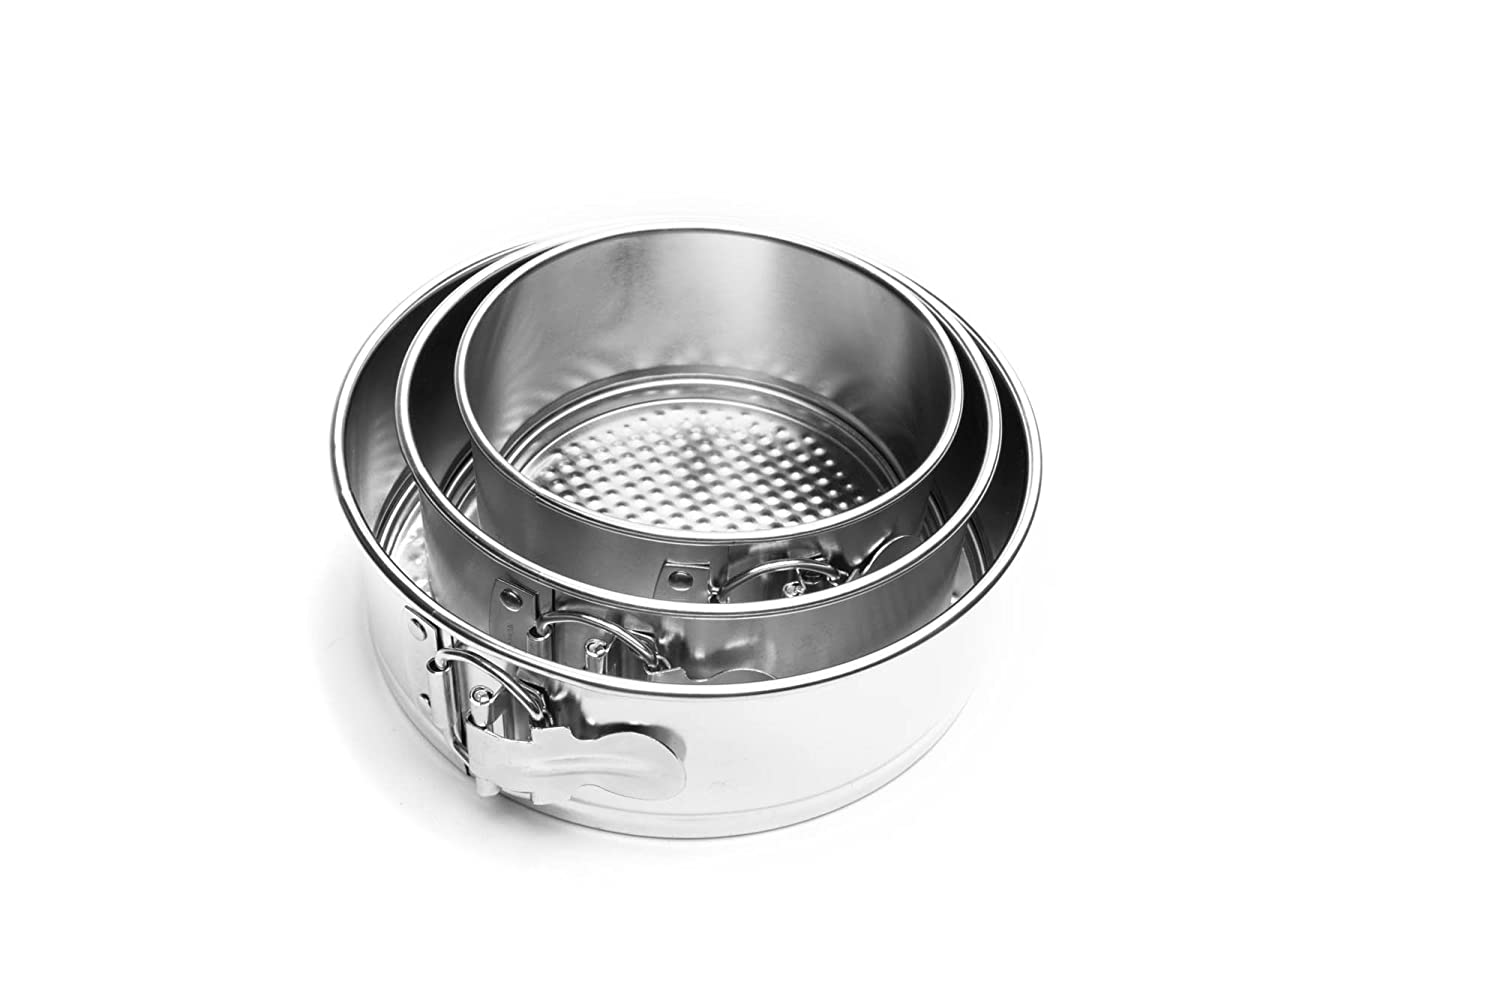 Fox Run 4563 Mini Springform Pan Set, Tin-Plated Steel, 3-Piece